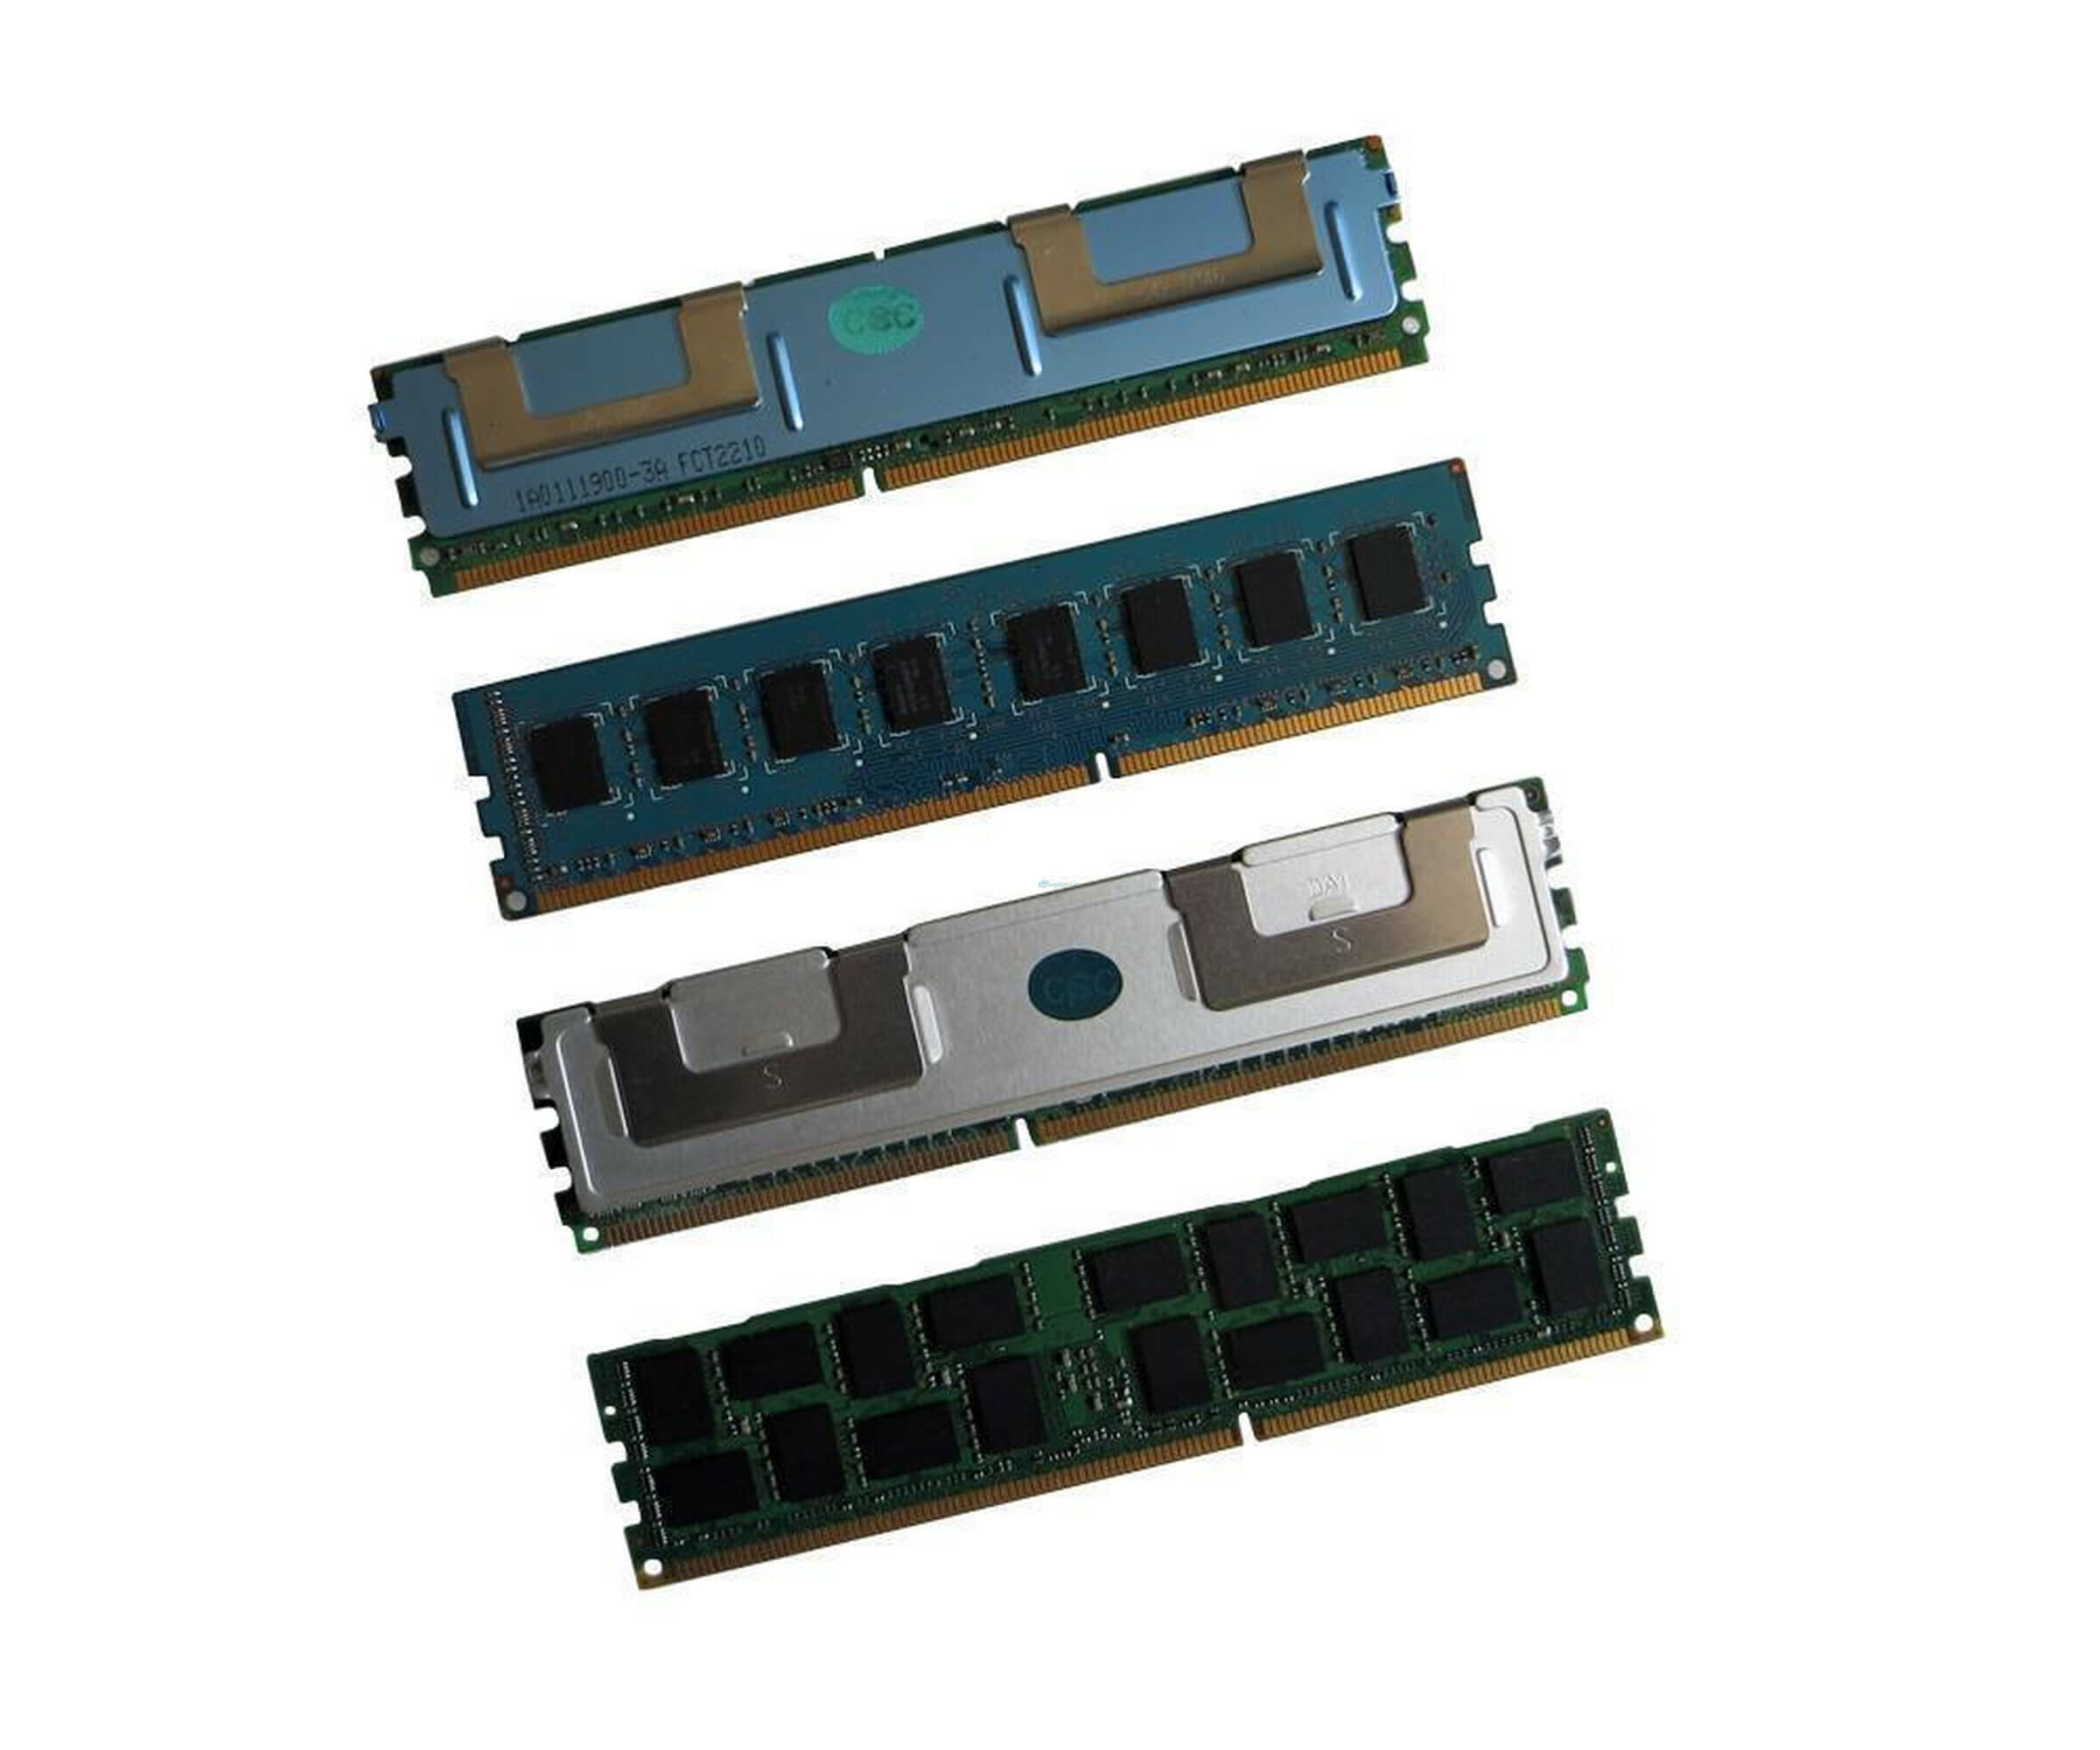 Kingston KF6761-ELG37 Memory - 512 MB - DIMM 240-PIN - PC-4200 - DDR2 SDRAM